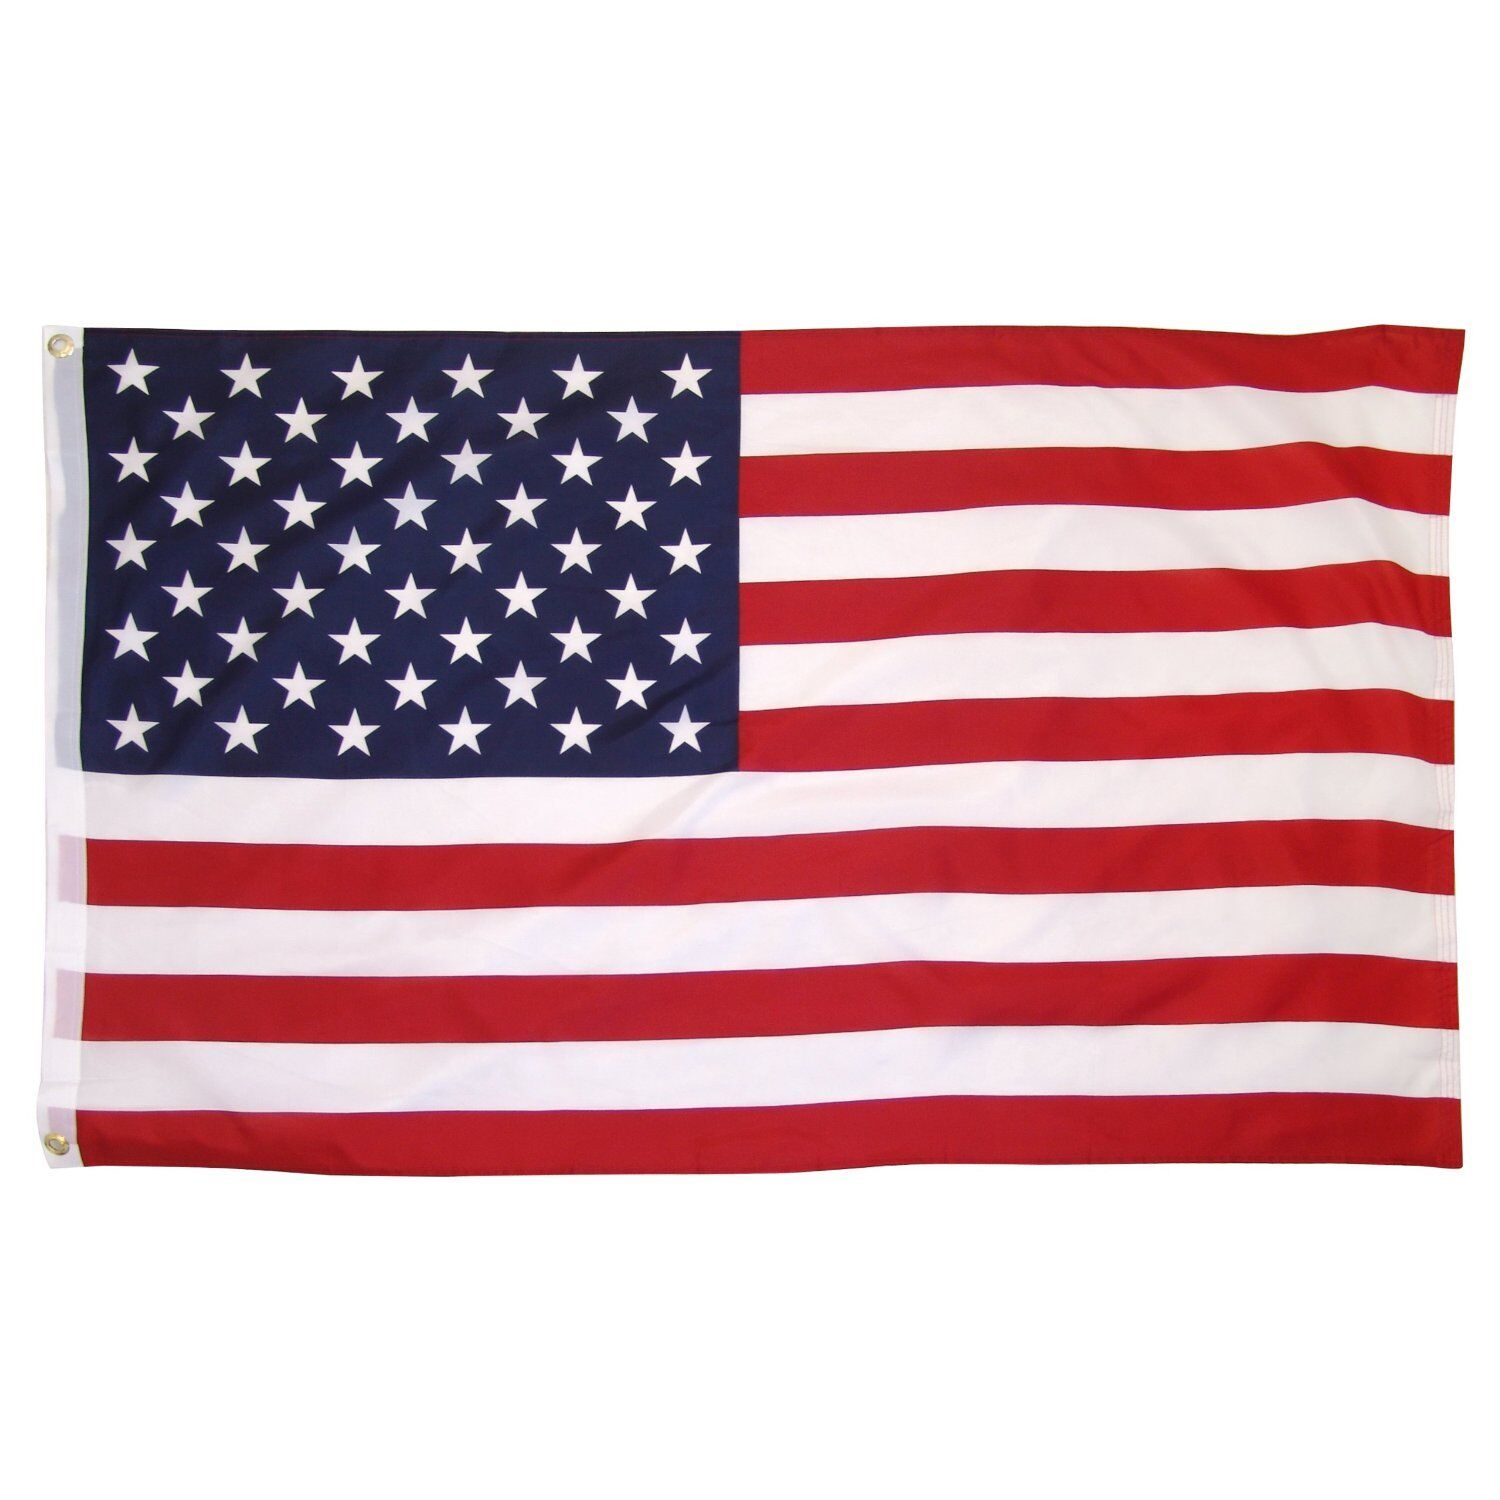 3' x 5' ft USA US American Flag Stars Grommets United States